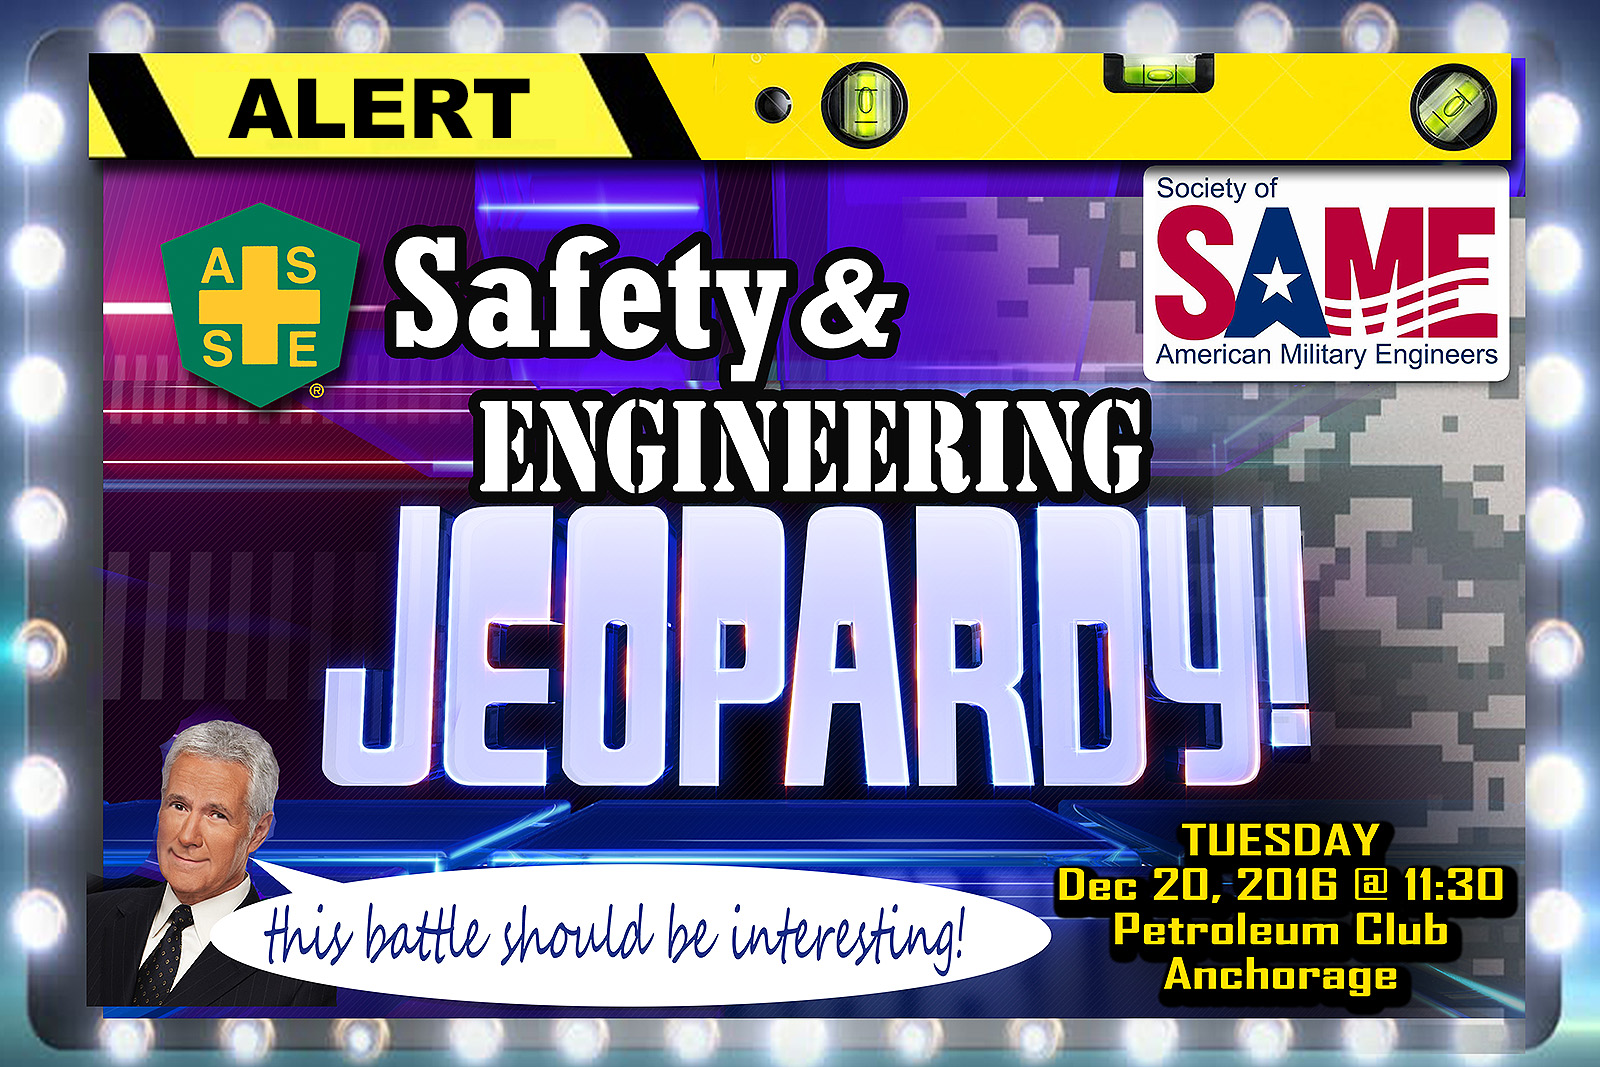 Safety and Engineering Jeopardy